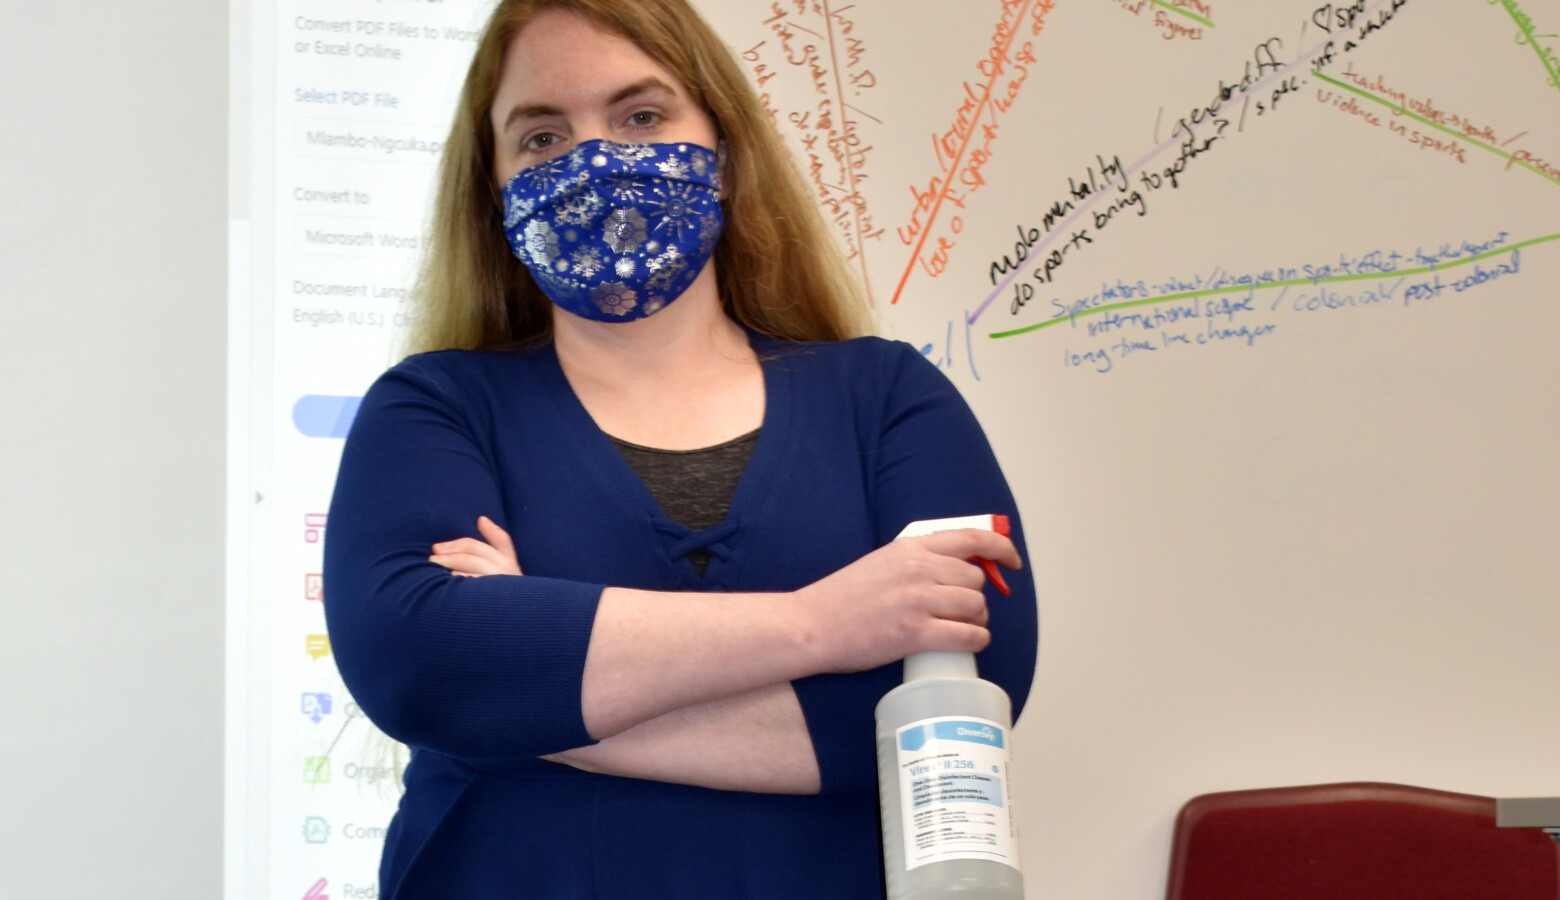 Crawfordsville High School teacher Emily Race says coming up with ideas about what can help her cope with pandemic-fueled stress feels like another task on a never-ending list of things to do. (Provided by Emily Race)